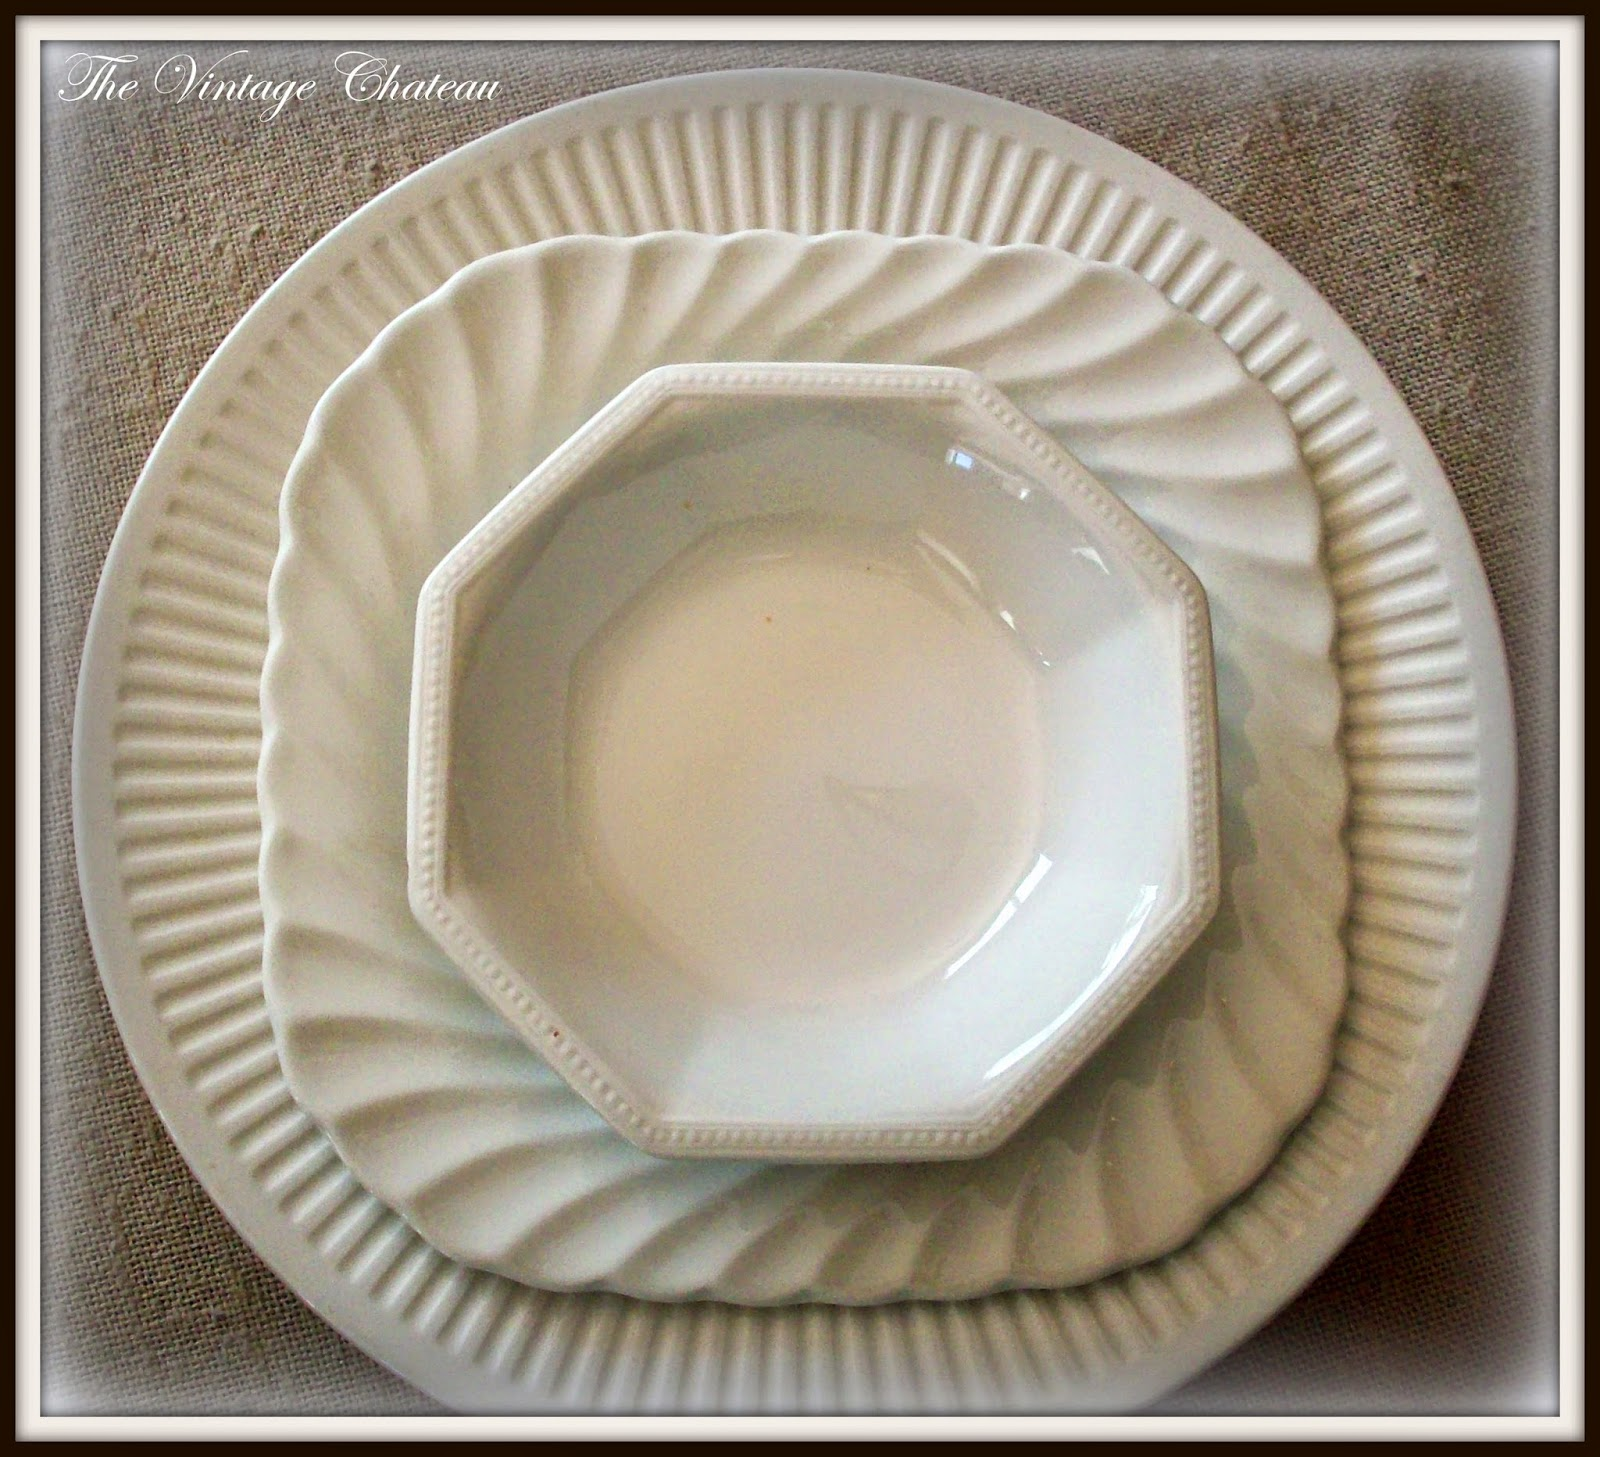 The Vintage Chateau: Irresistible Ironstone